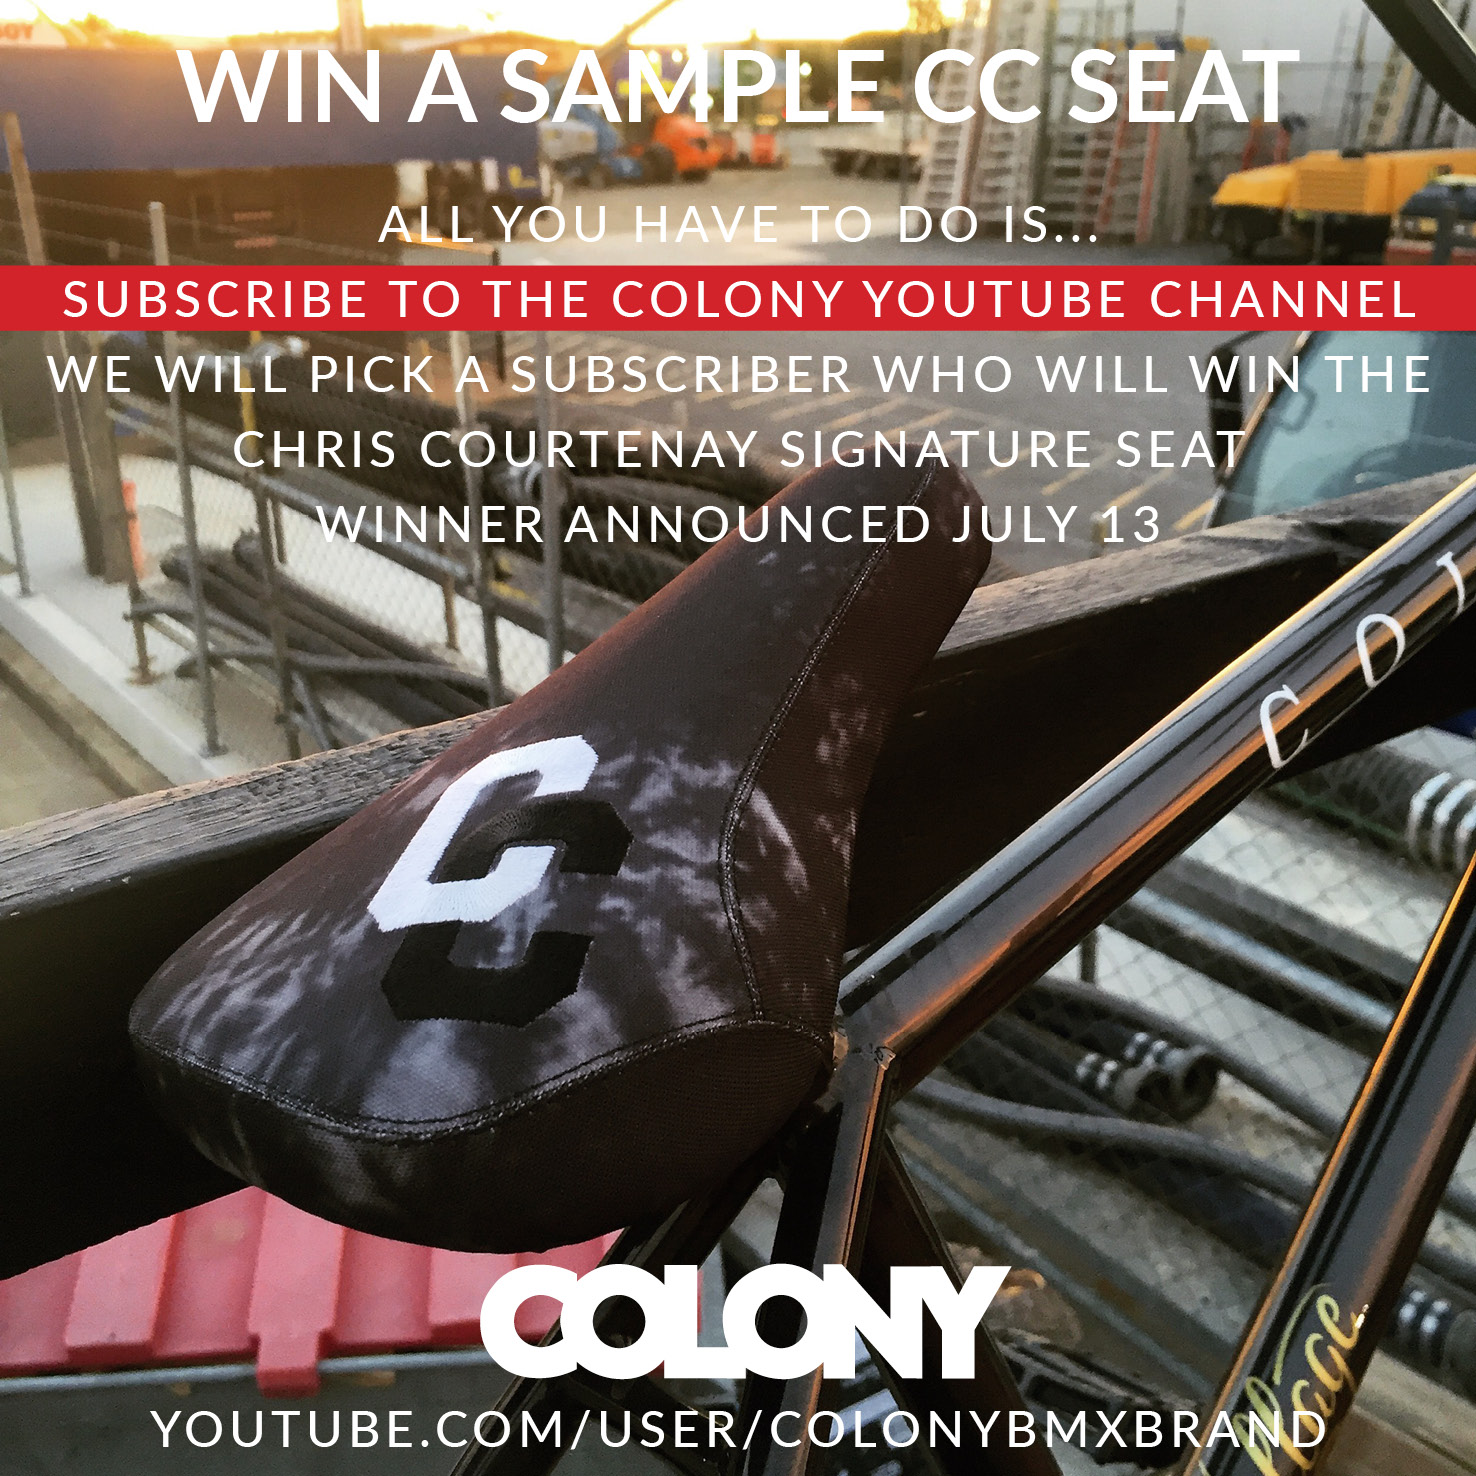 COLONY YOUTUBE SUBS FB JULY16